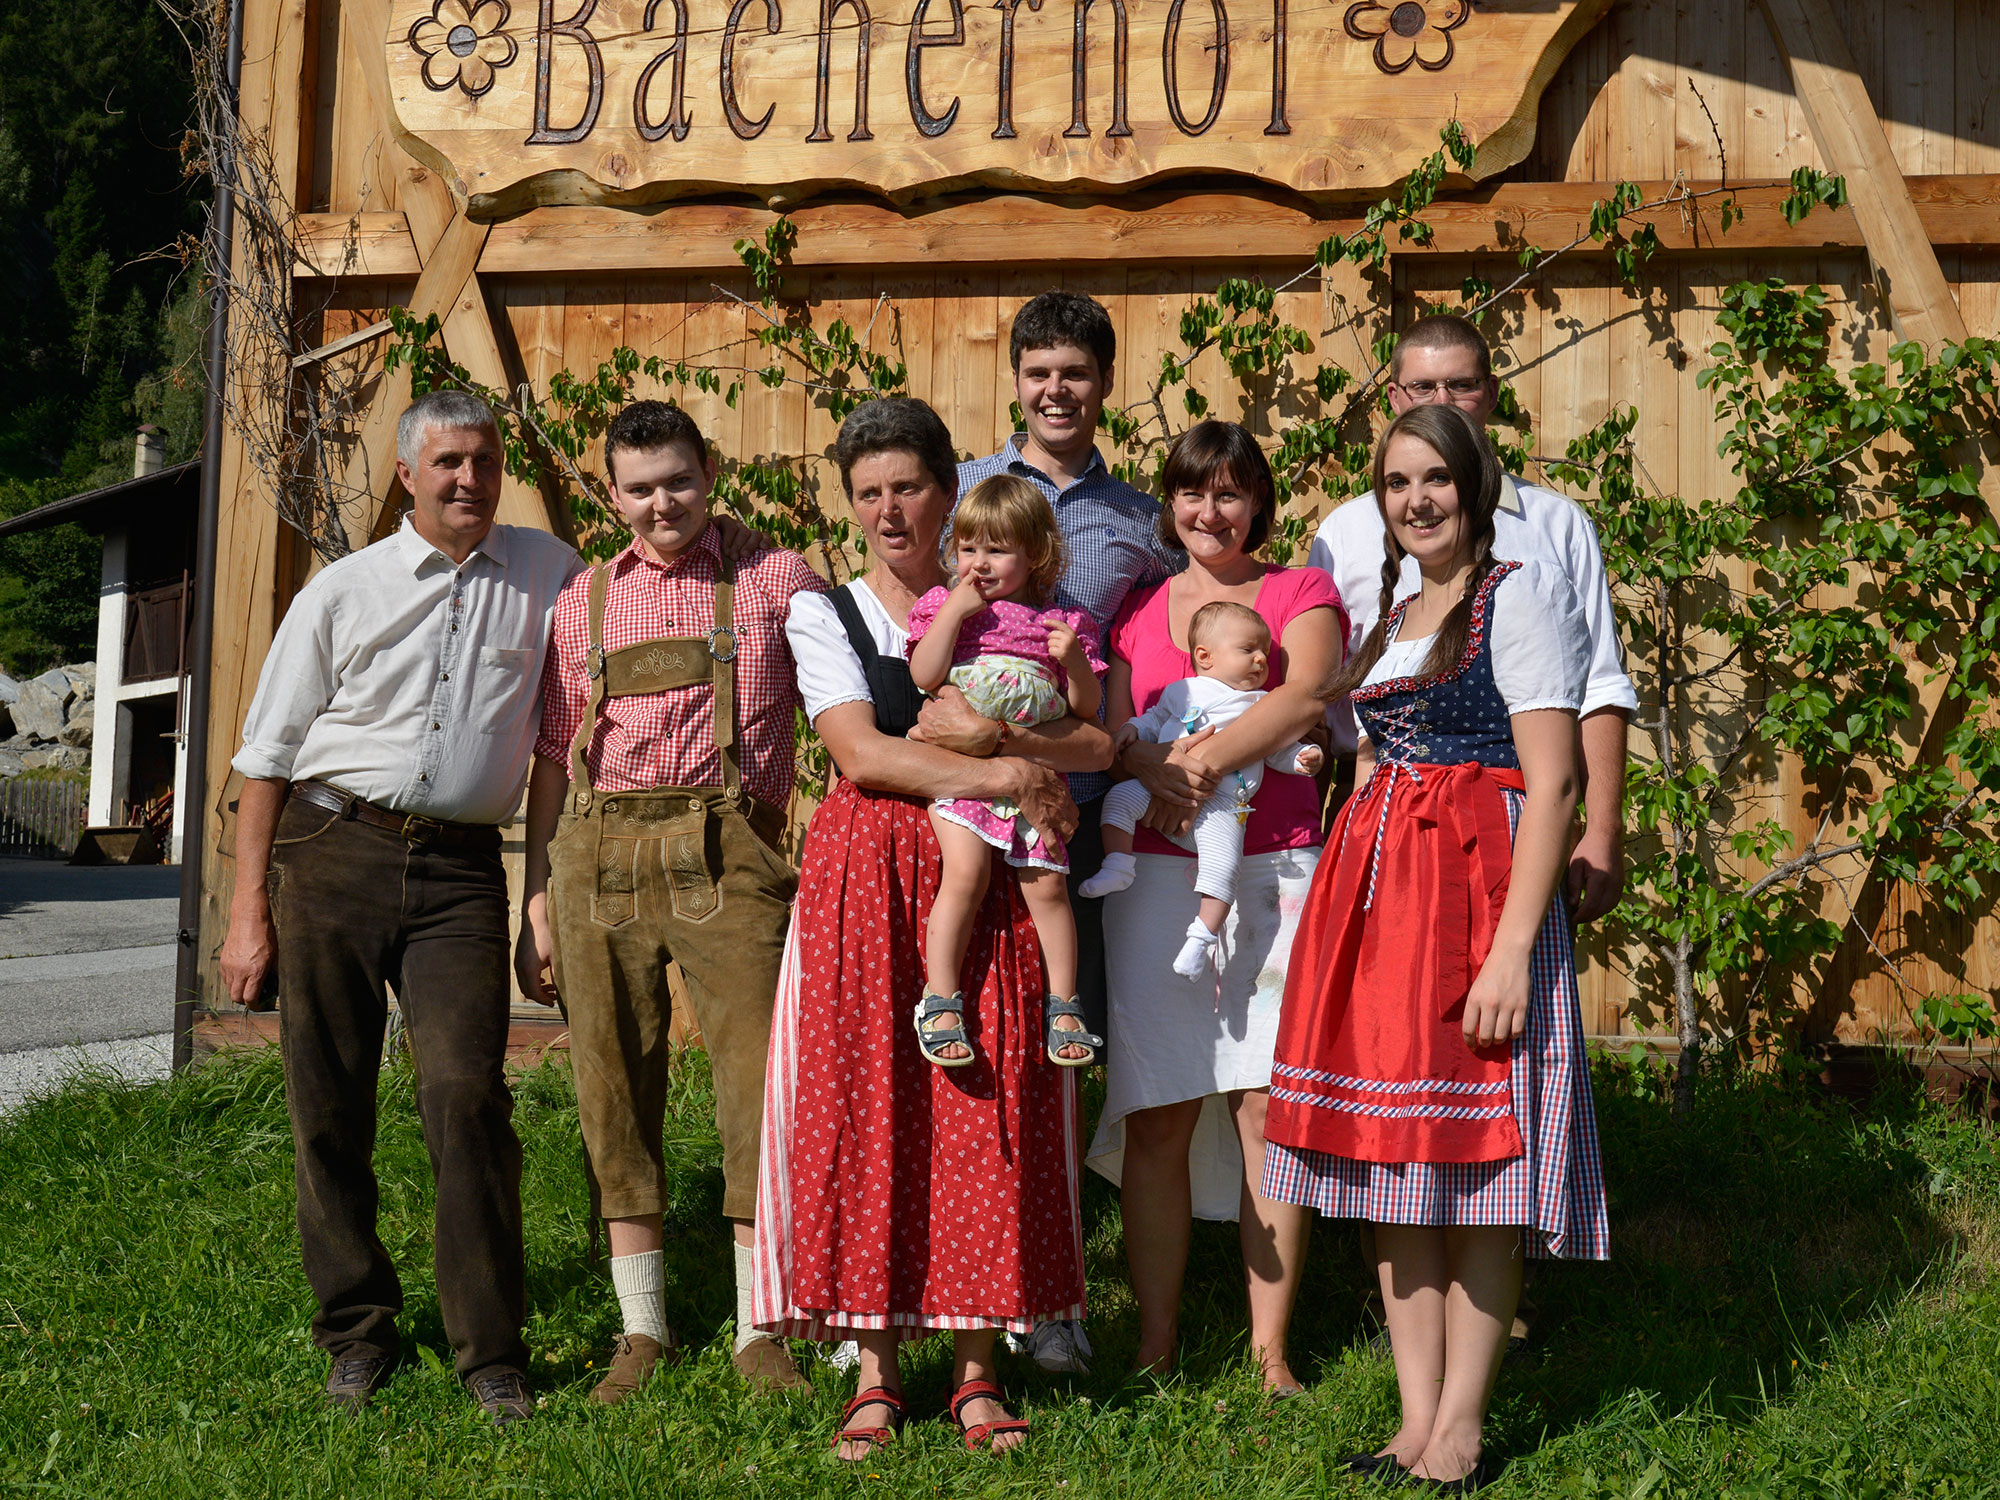 Familie Hofer vom Bacherhof in Pfitsch